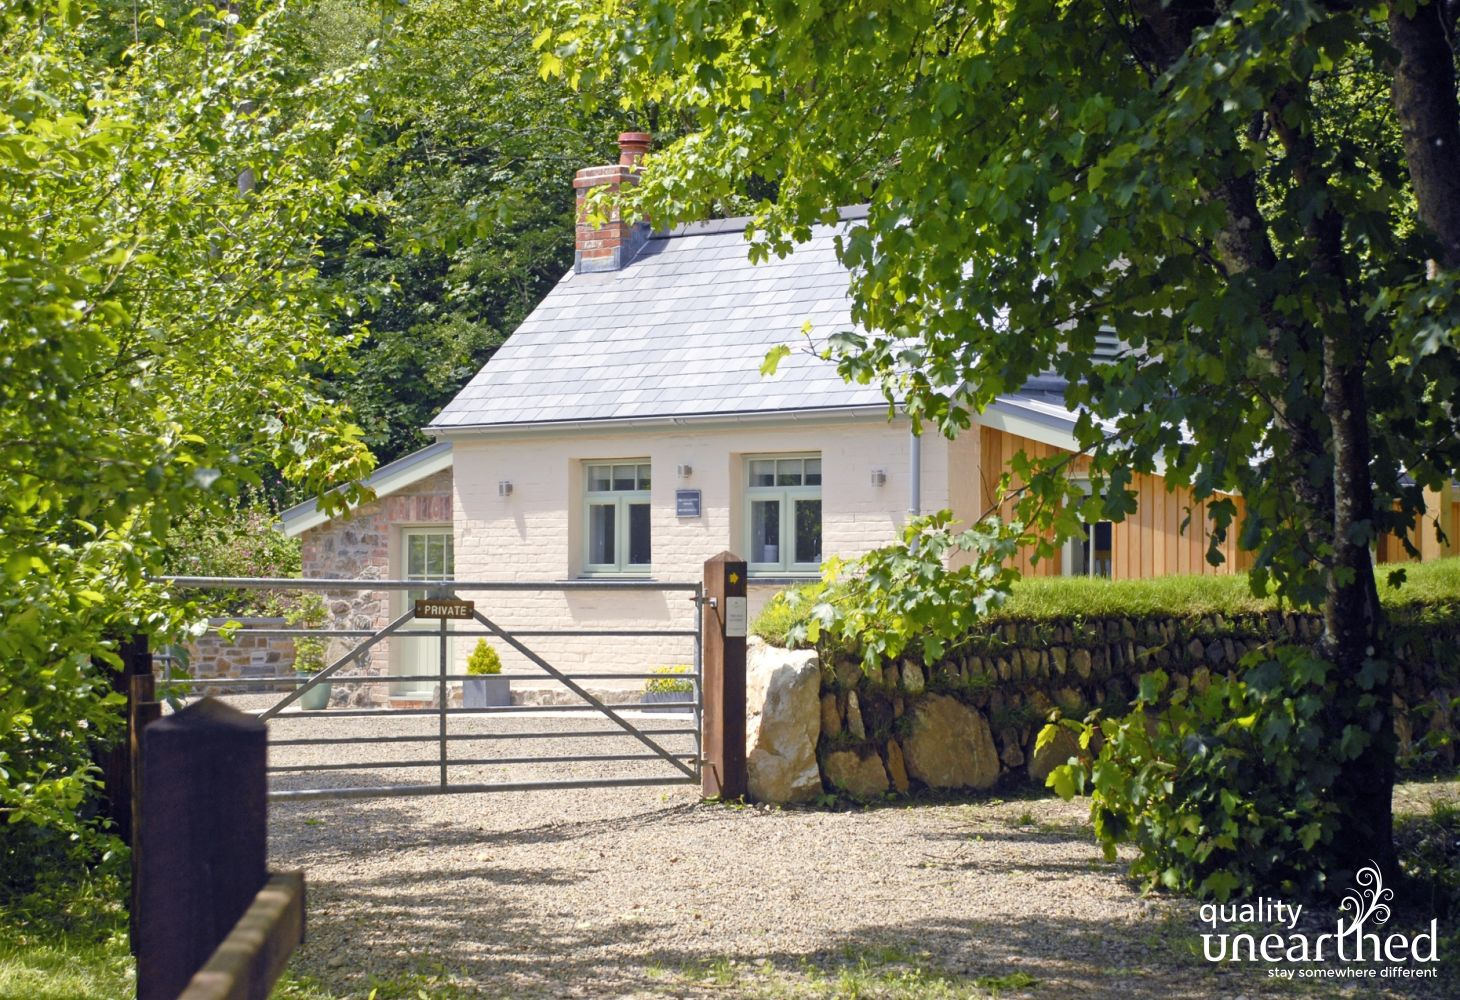 Solva holiday home in secluded woodlands